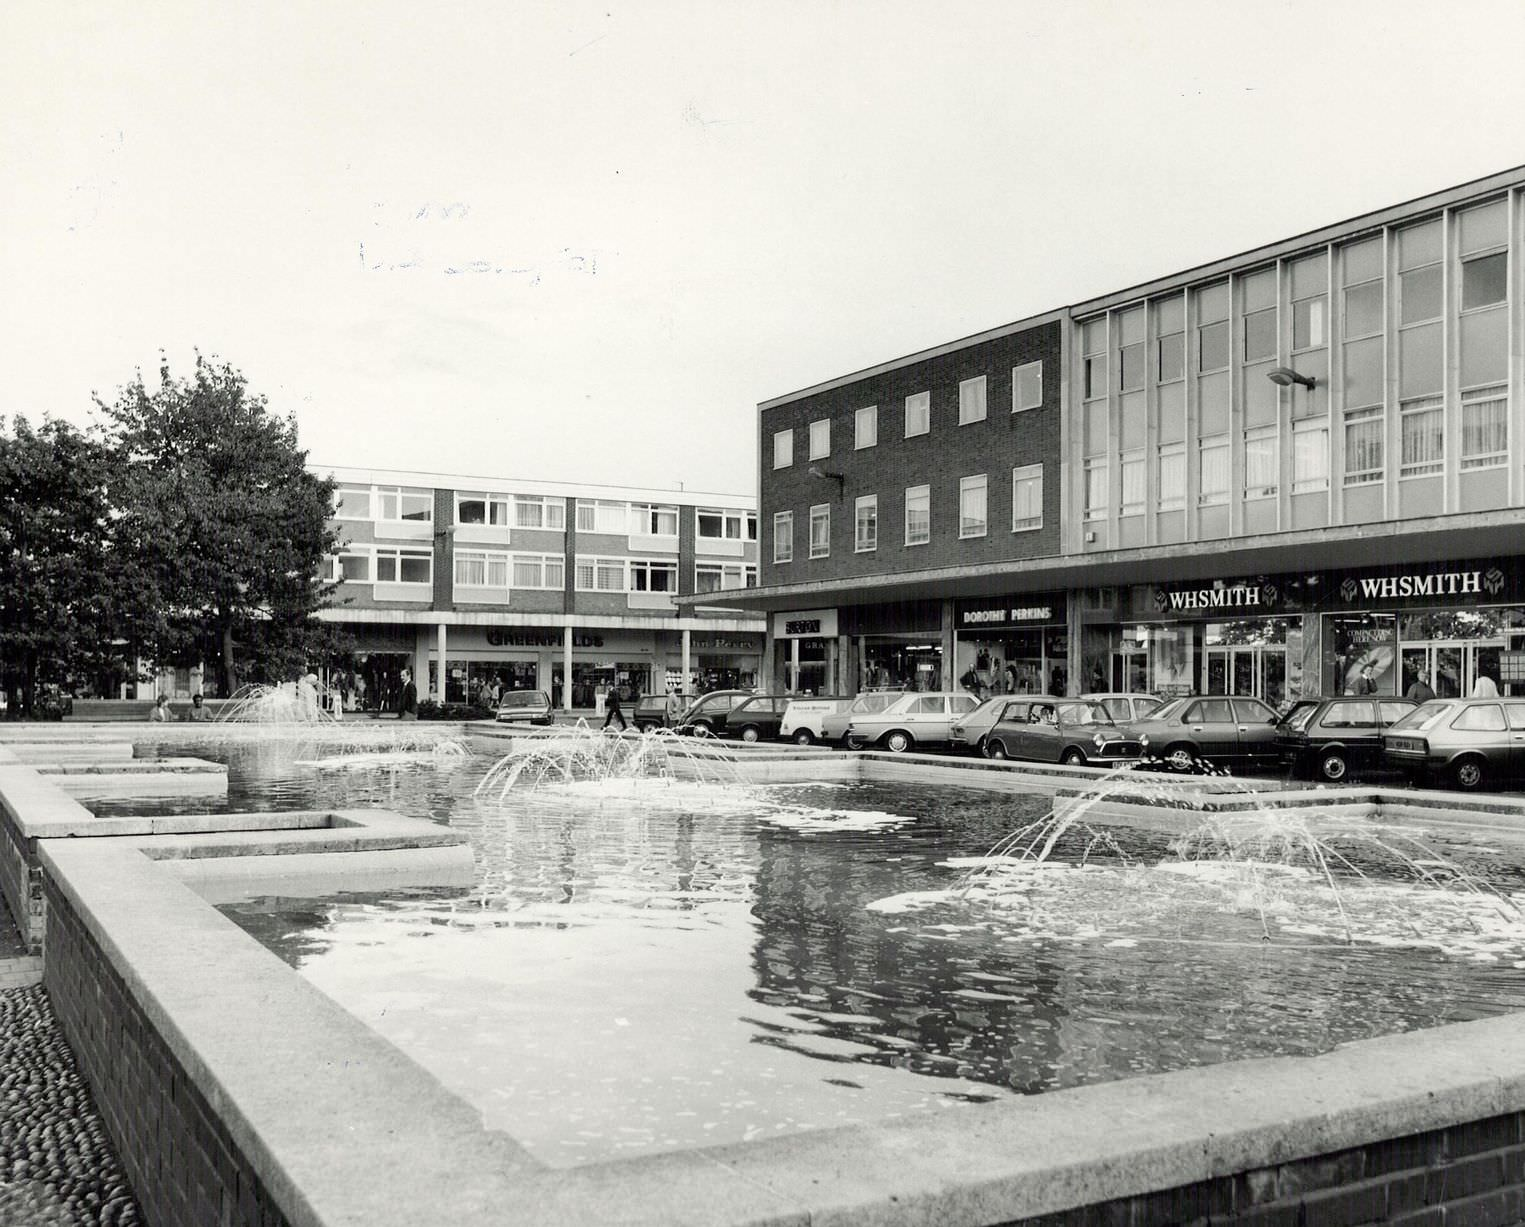 Mell Square in Solihull, with the fountains in the middle. 17th October 1984.